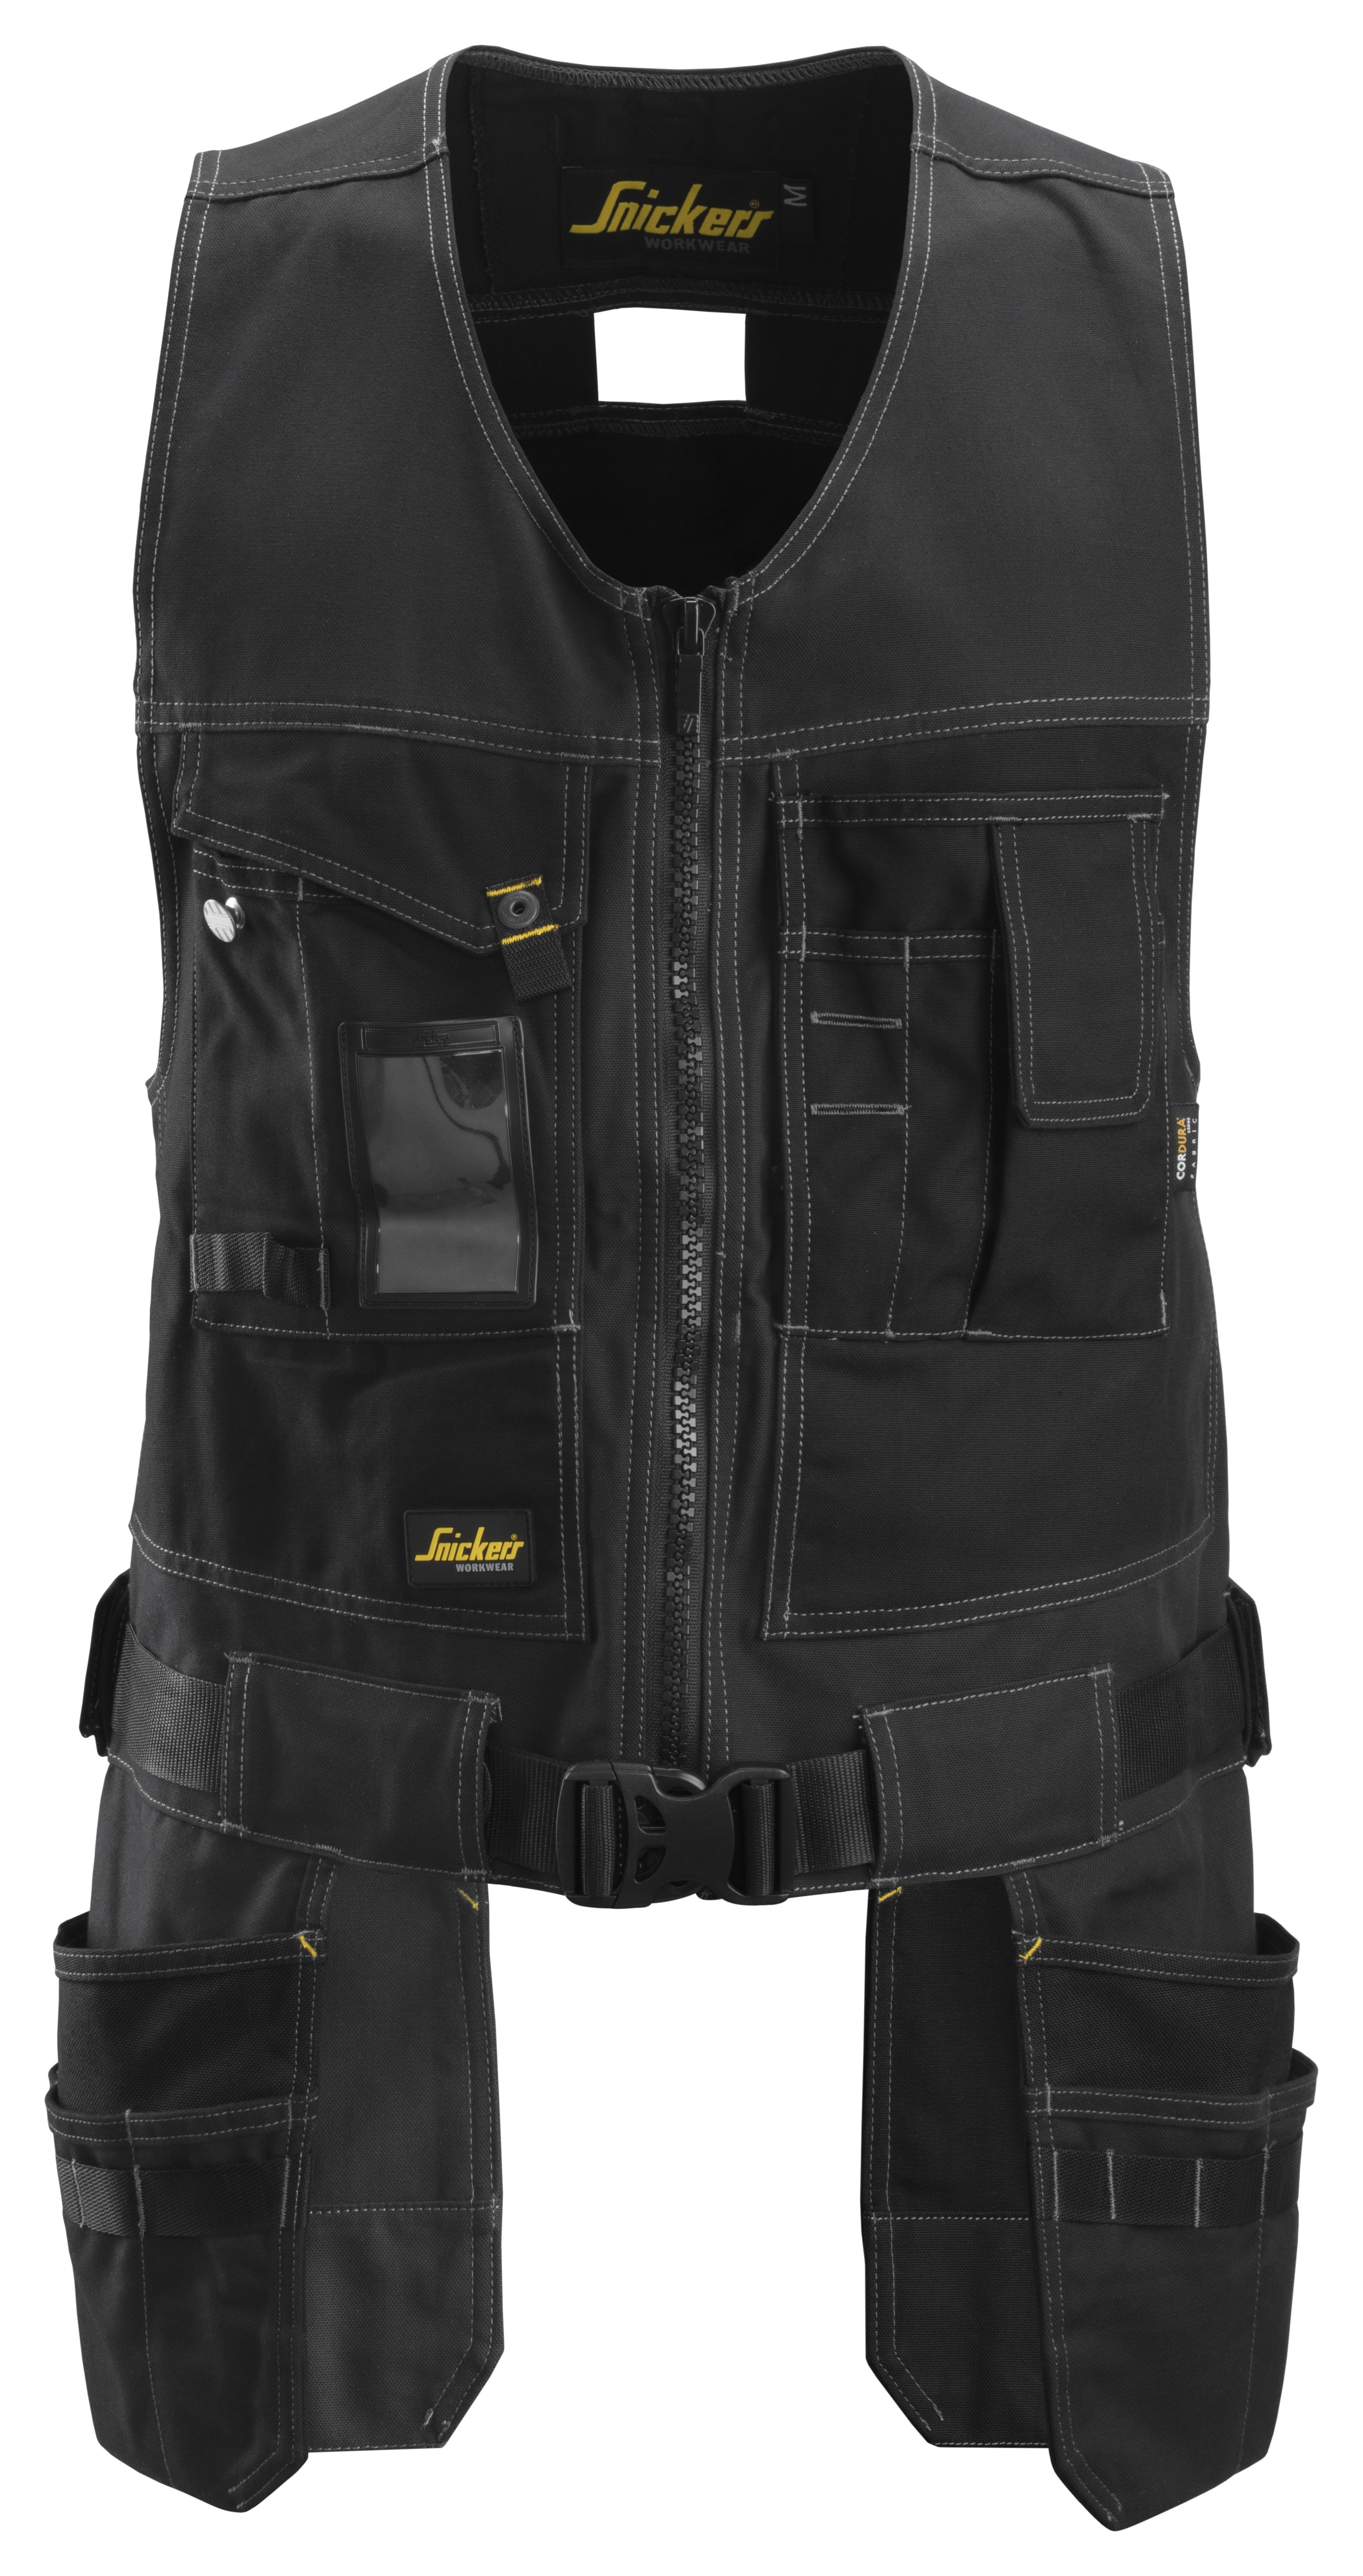 SNICKERS CANVAS + FLEXI TOOLVEST w/ front holster pockets